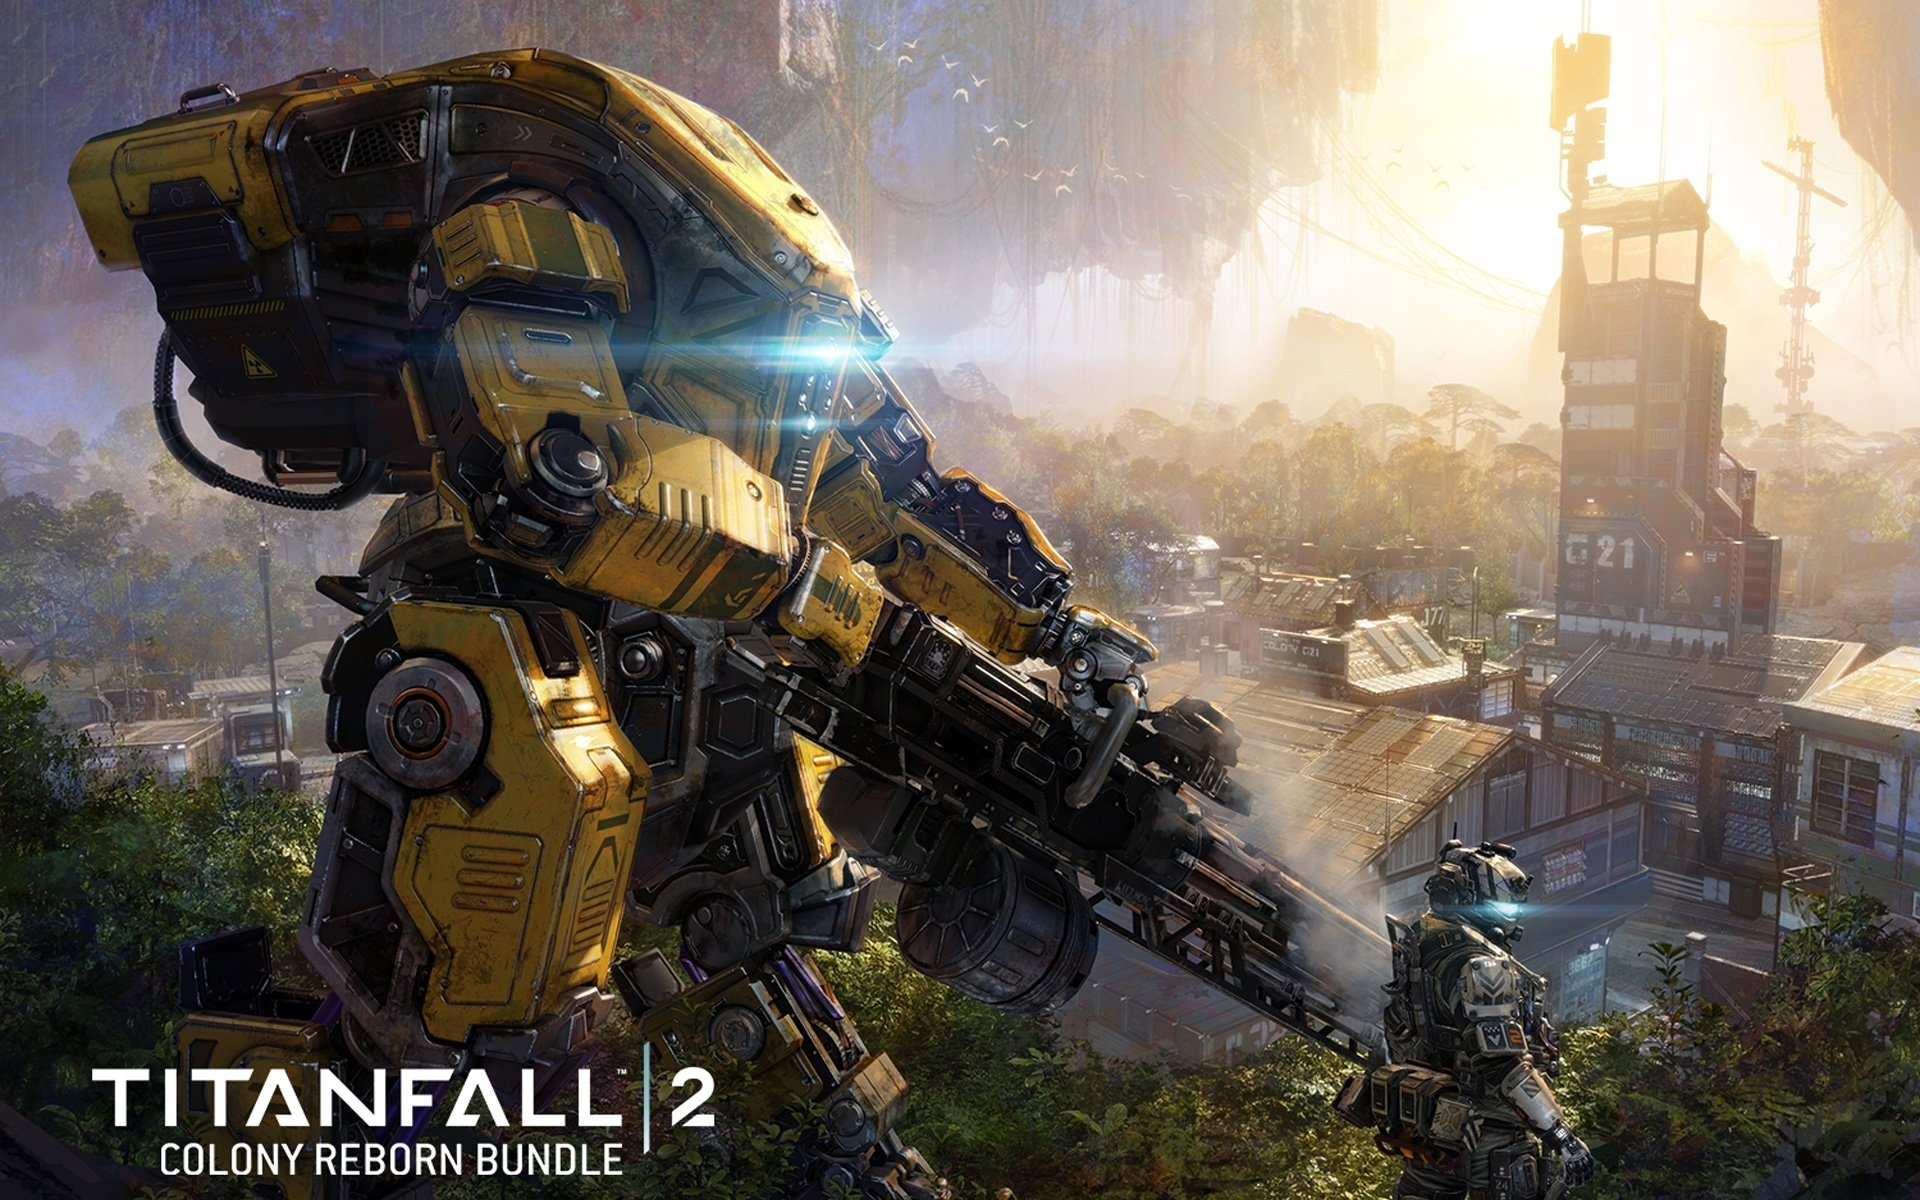 55 titanfall 2 hd wallpapers | background images - wallpaper abyss